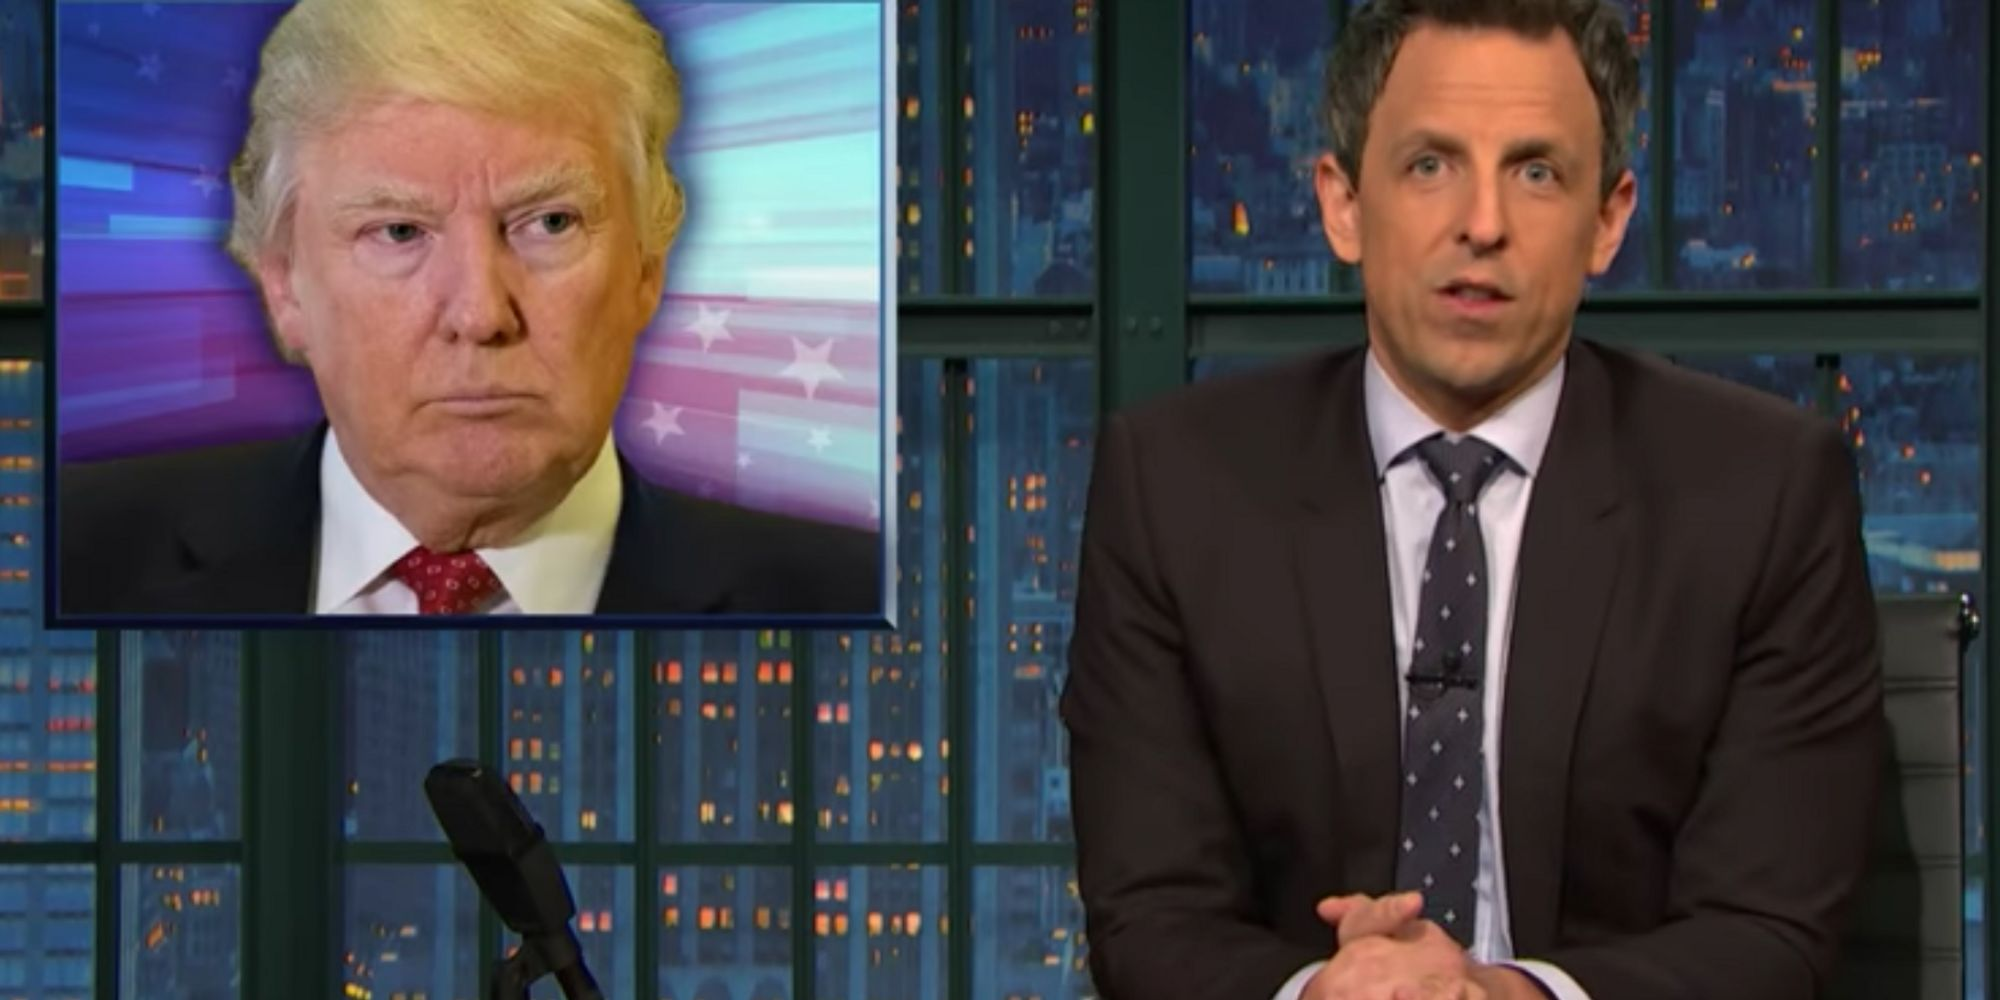 Seth Meyers Calls Out Donald Trump's Silence On The Quebec Shooting